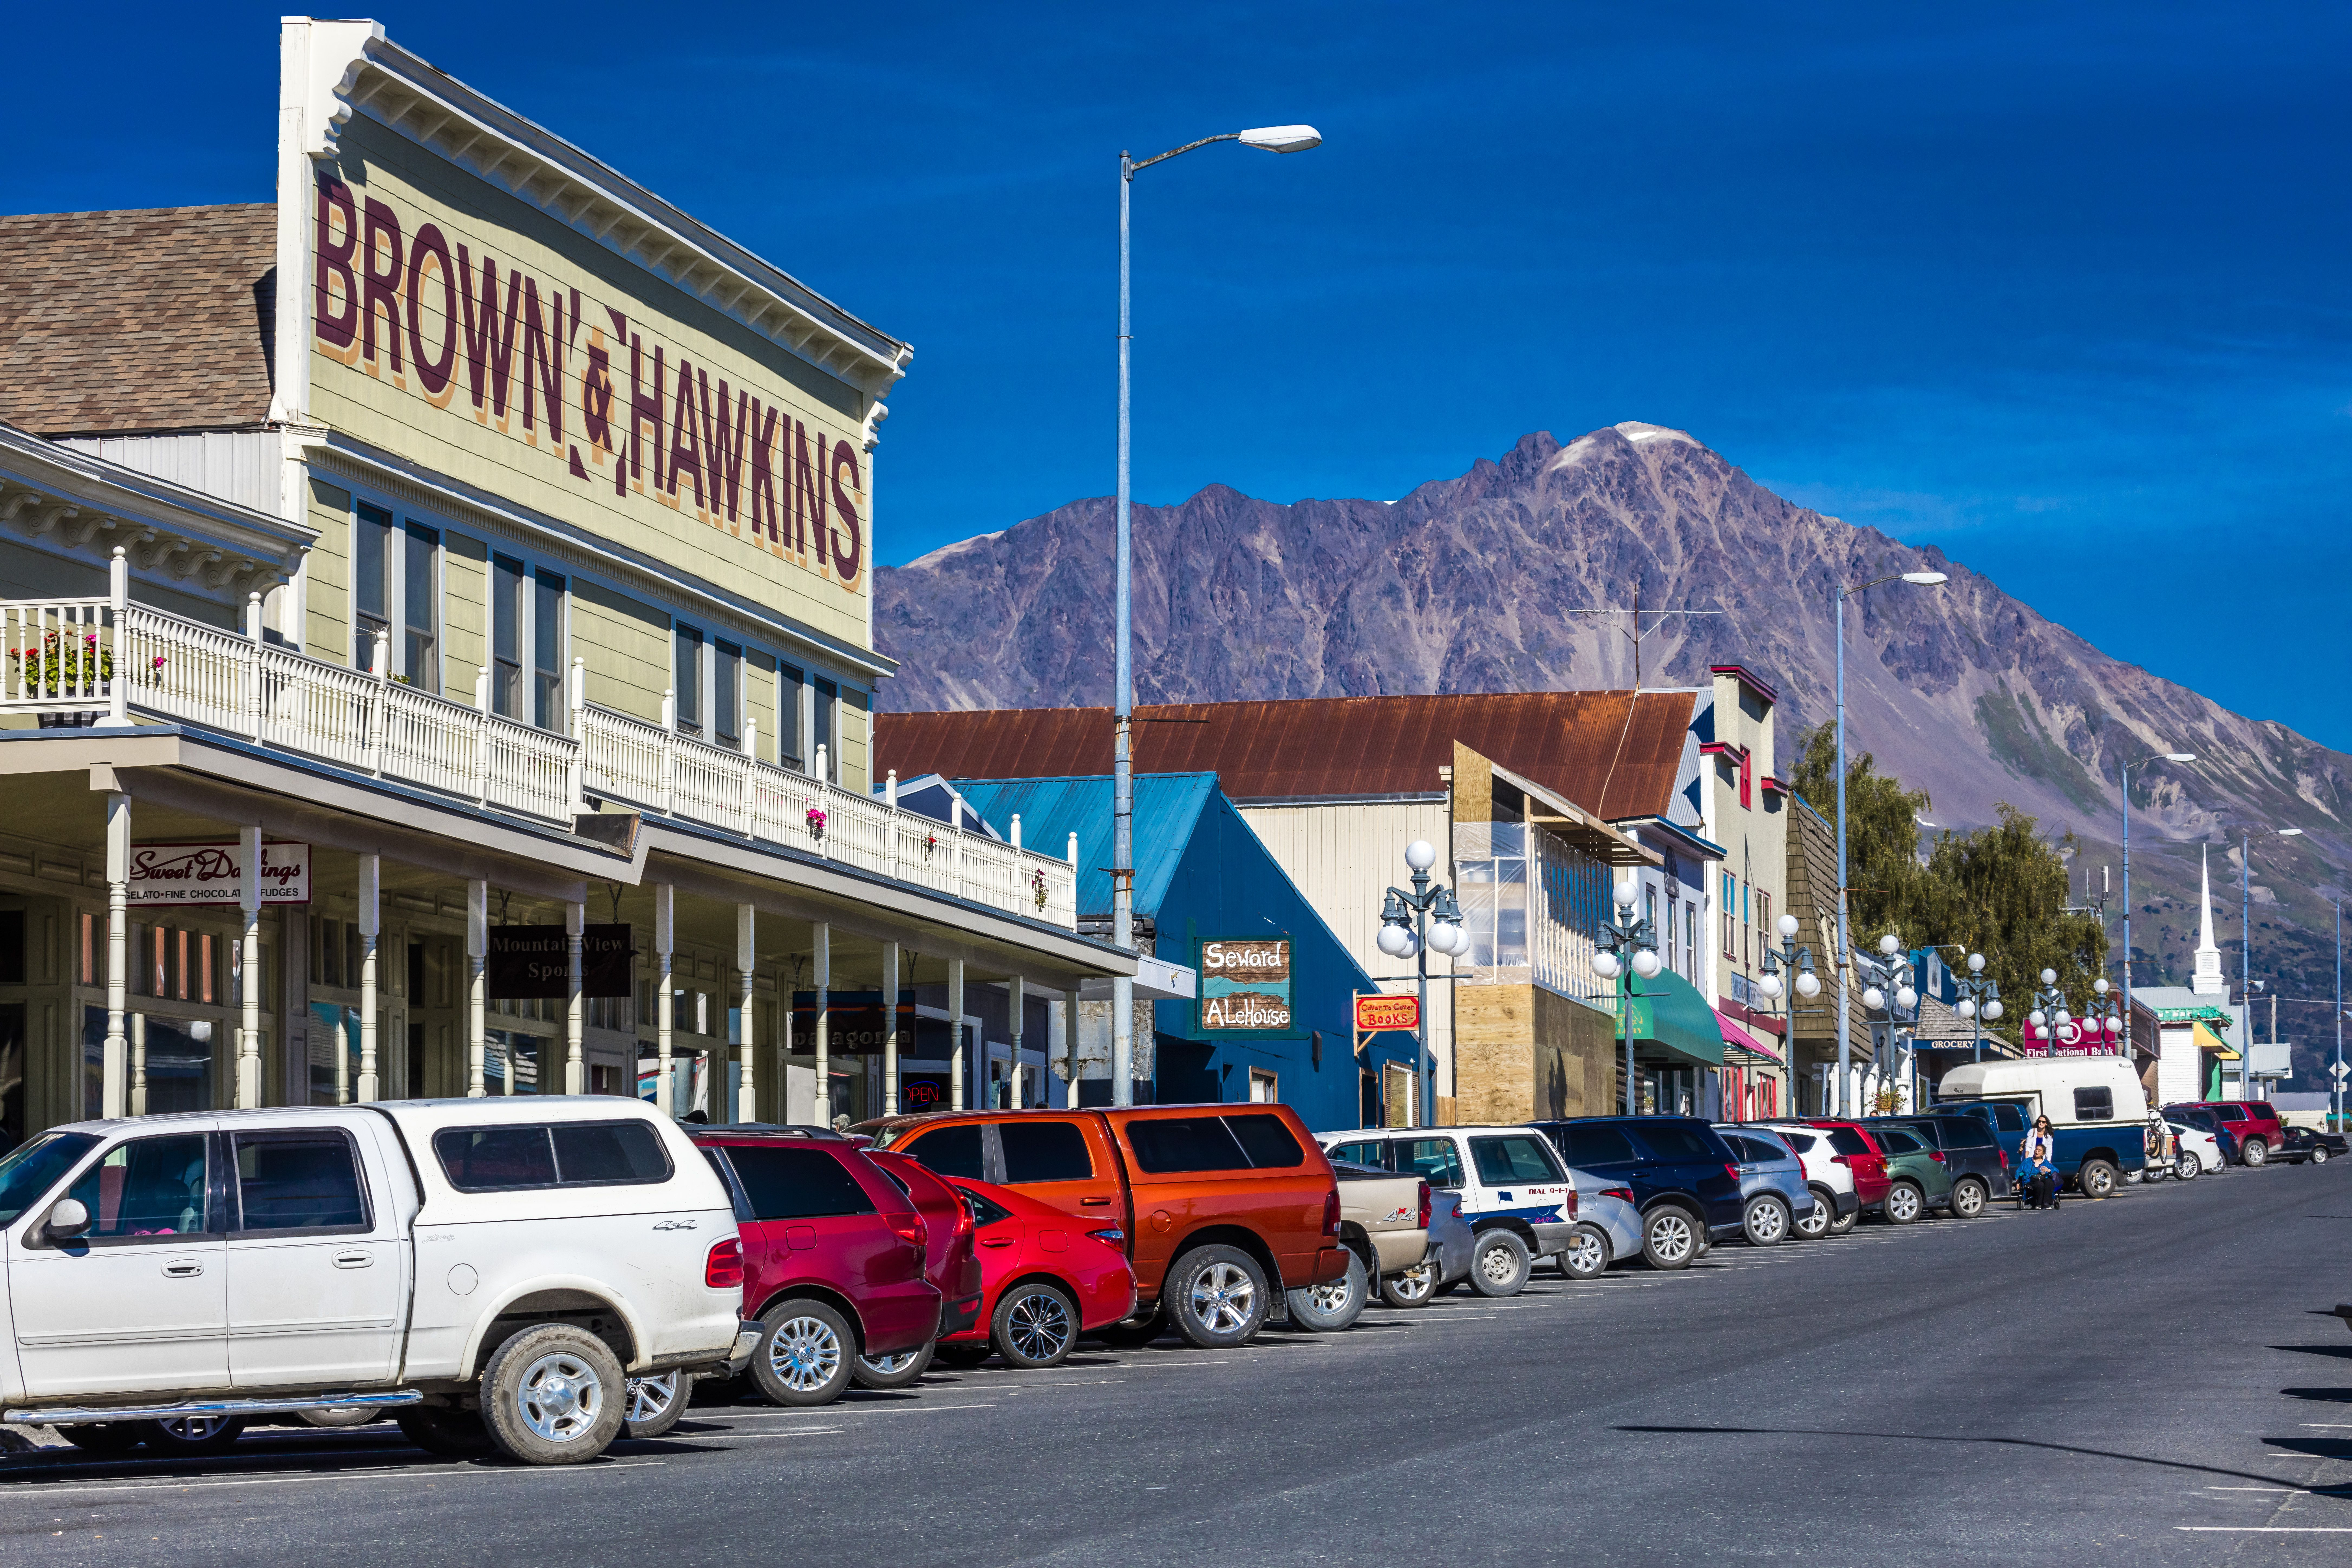 September 2, 2016 - Seward Alaska storefronts and small businesses on nice sunny day in AlaskaView of Seward, Alaska storefronts - 02 Sep 2016